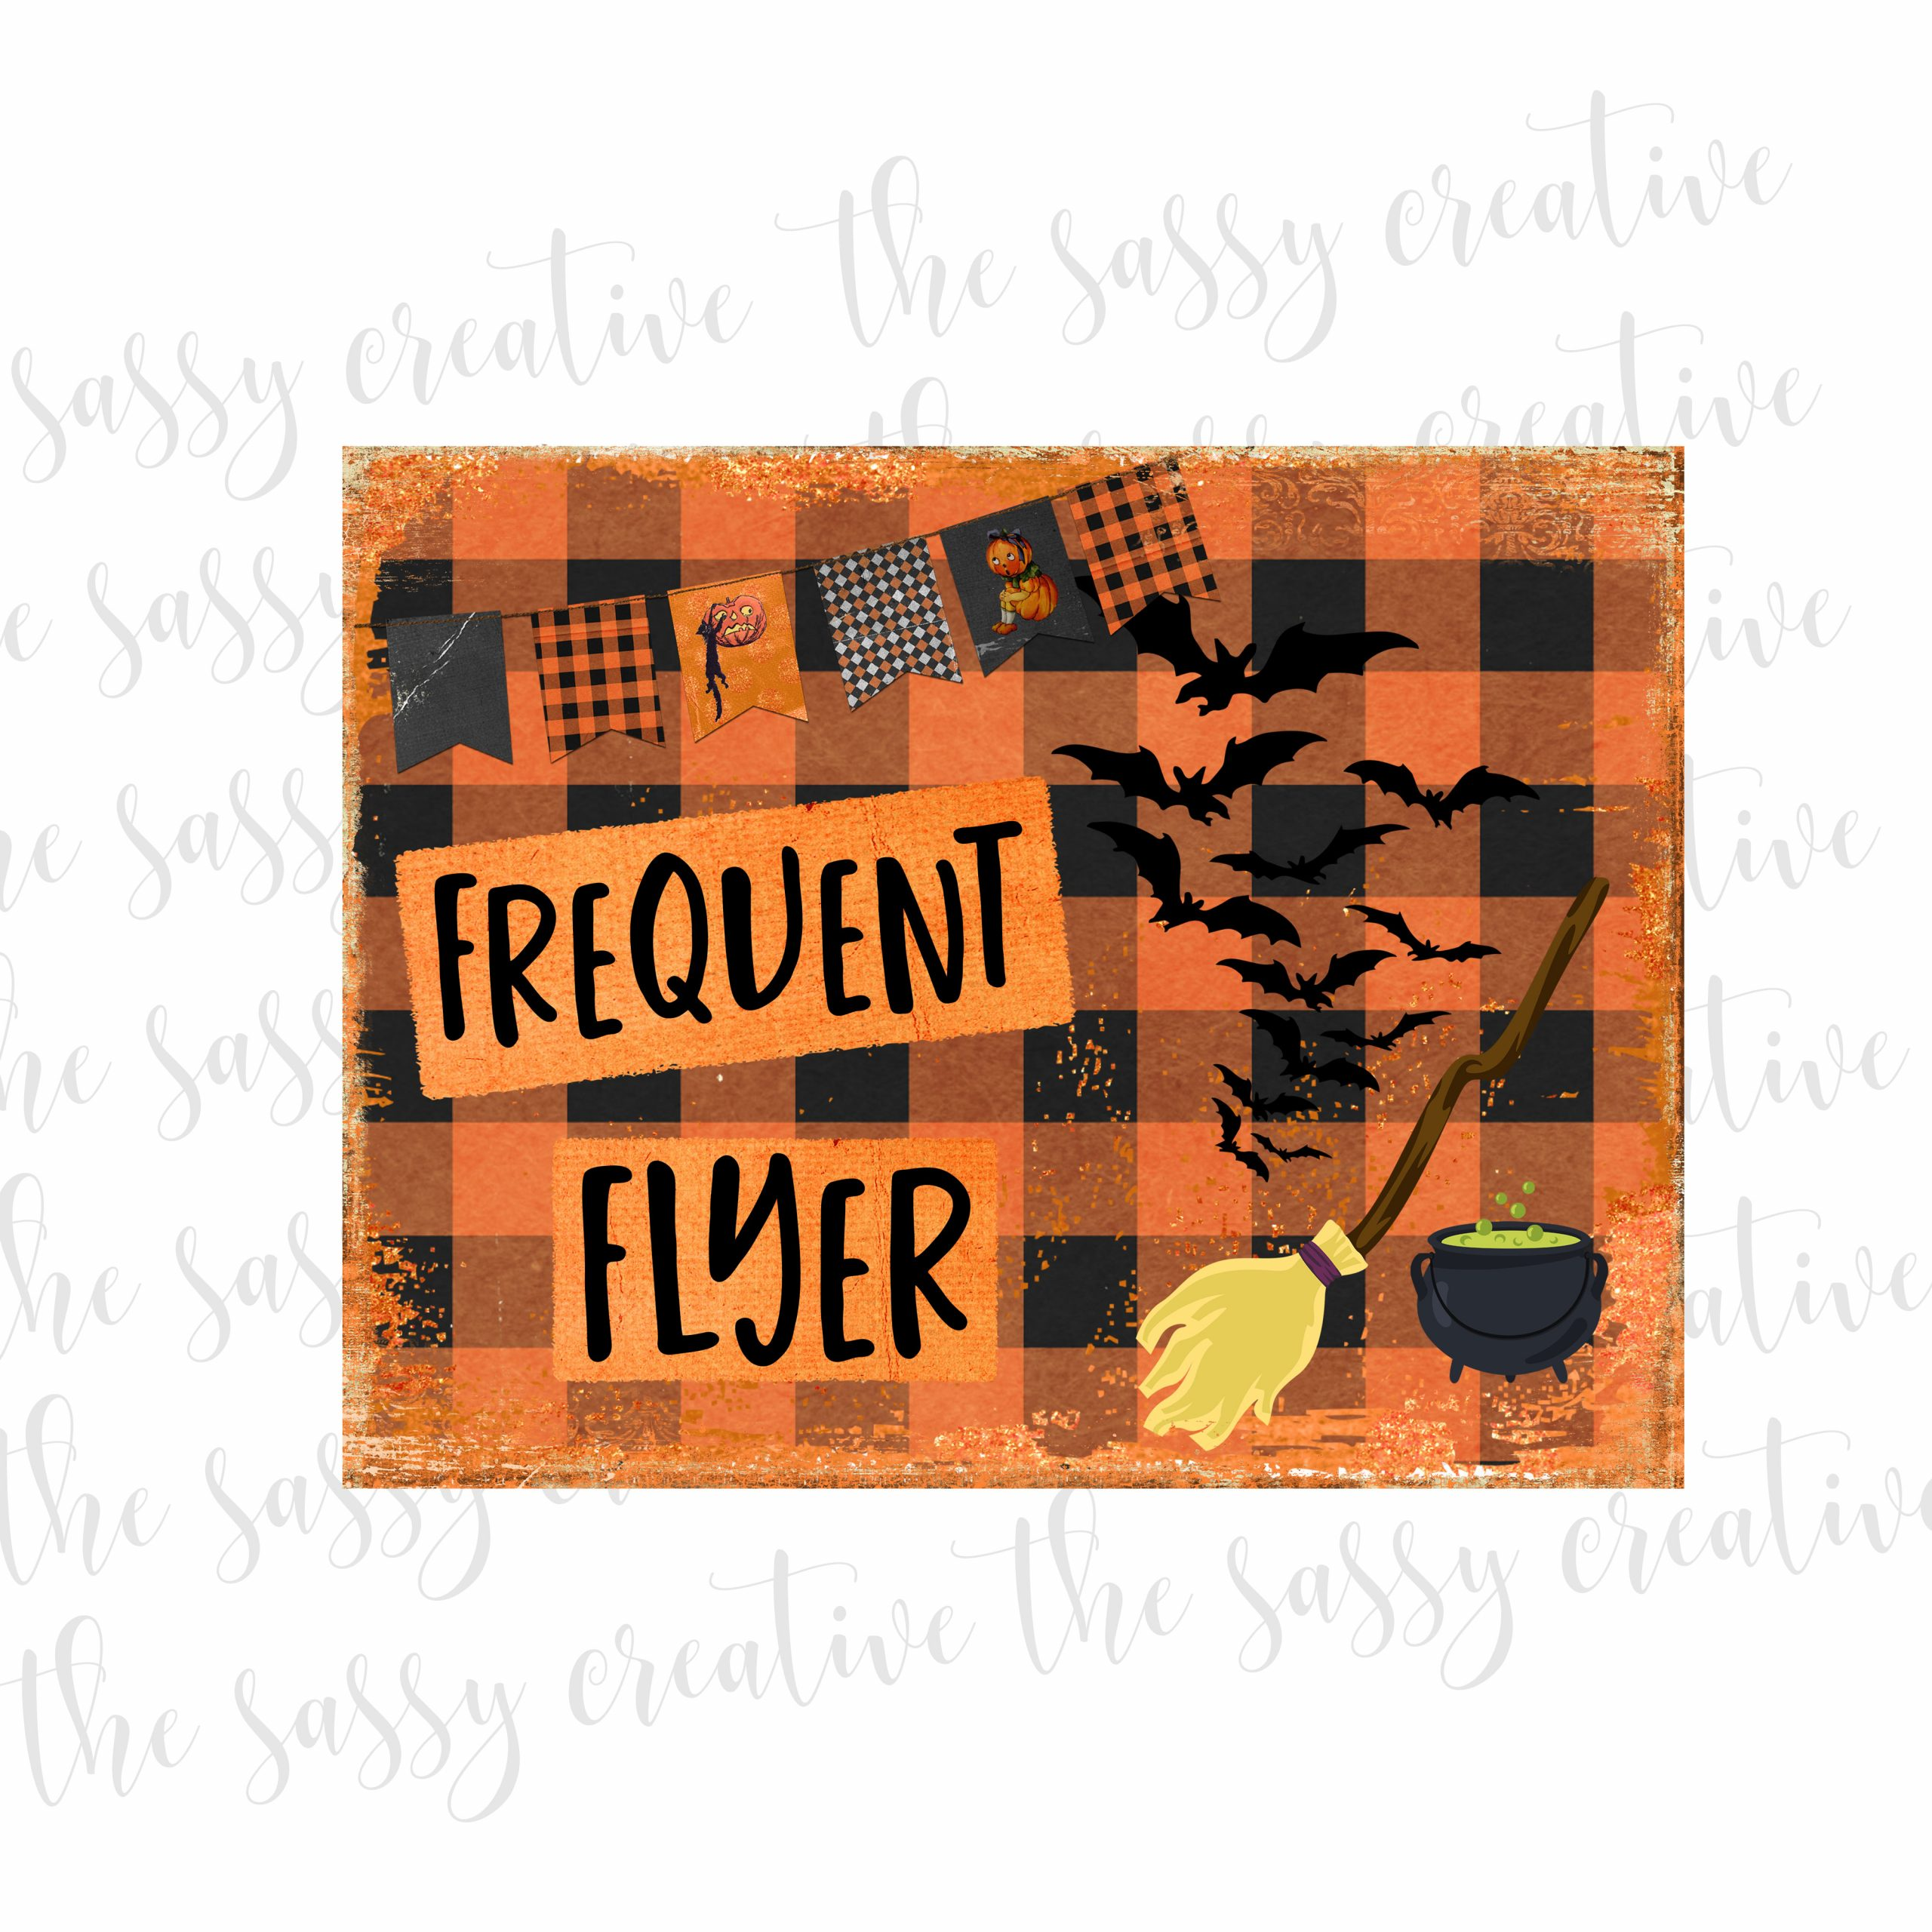 frequentflyercover